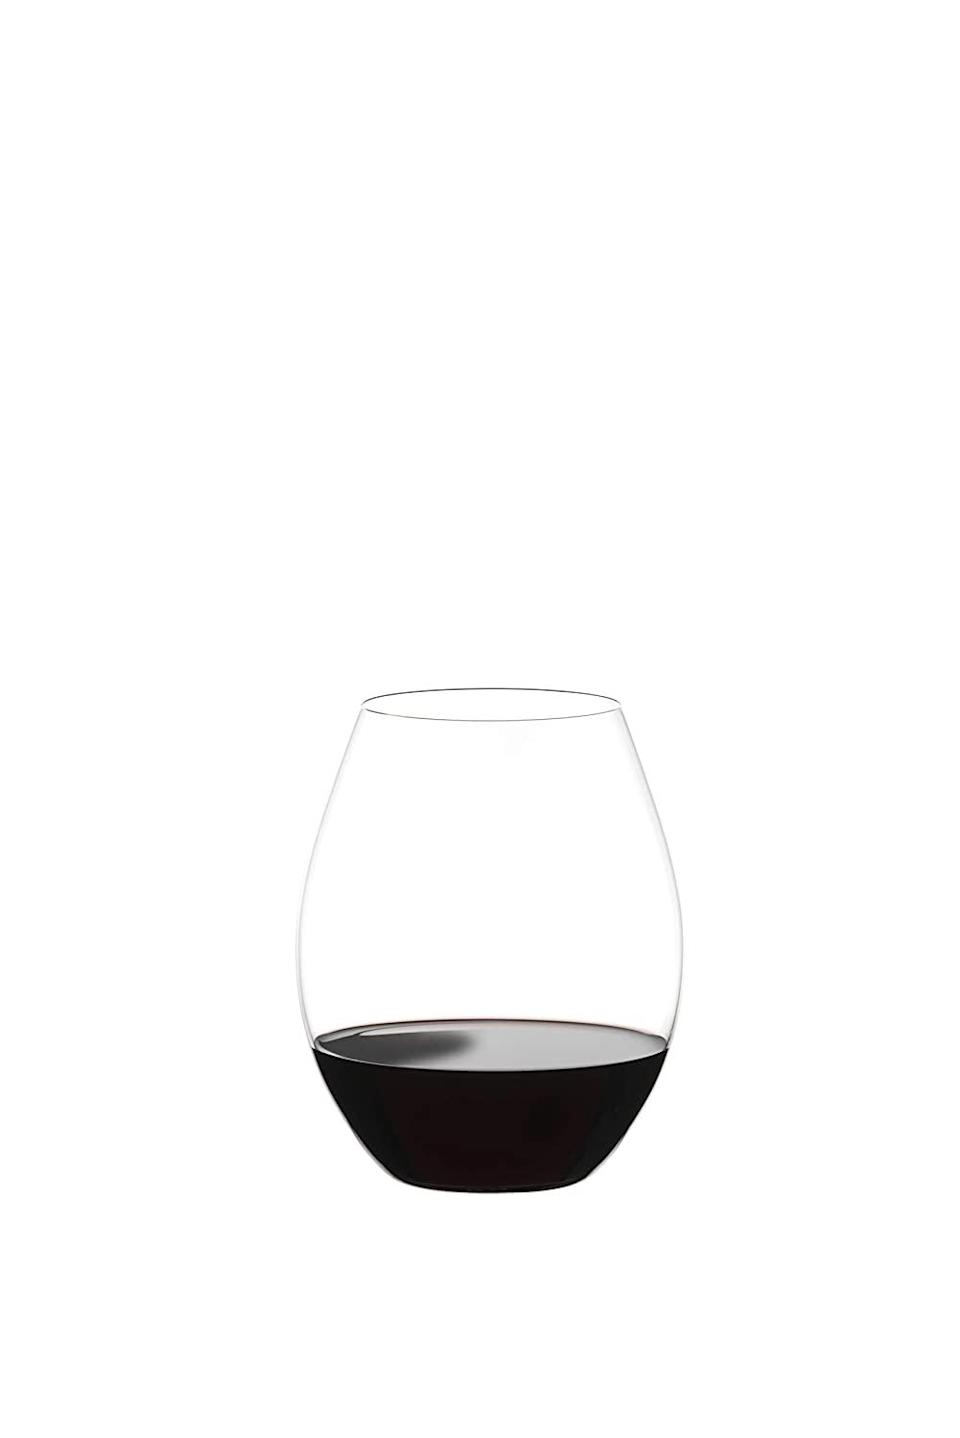 """<h2>Riedel Tumbler Wine Glasses</h2><br><br><strong>Riedel</strong> Tumbler Wine Glasses, $, available at <a href=""""https://www.amazon.com/Riedel-Collection-Tumbler-Glasses-Clear/dp/B085FXG3KY"""" rel=""""nofollow noopener"""" target=""""_blank"""" data-ylk=""""slk:Amazon"""" class=""""link rapid-noclick-resp"""">Amazon</a>"""